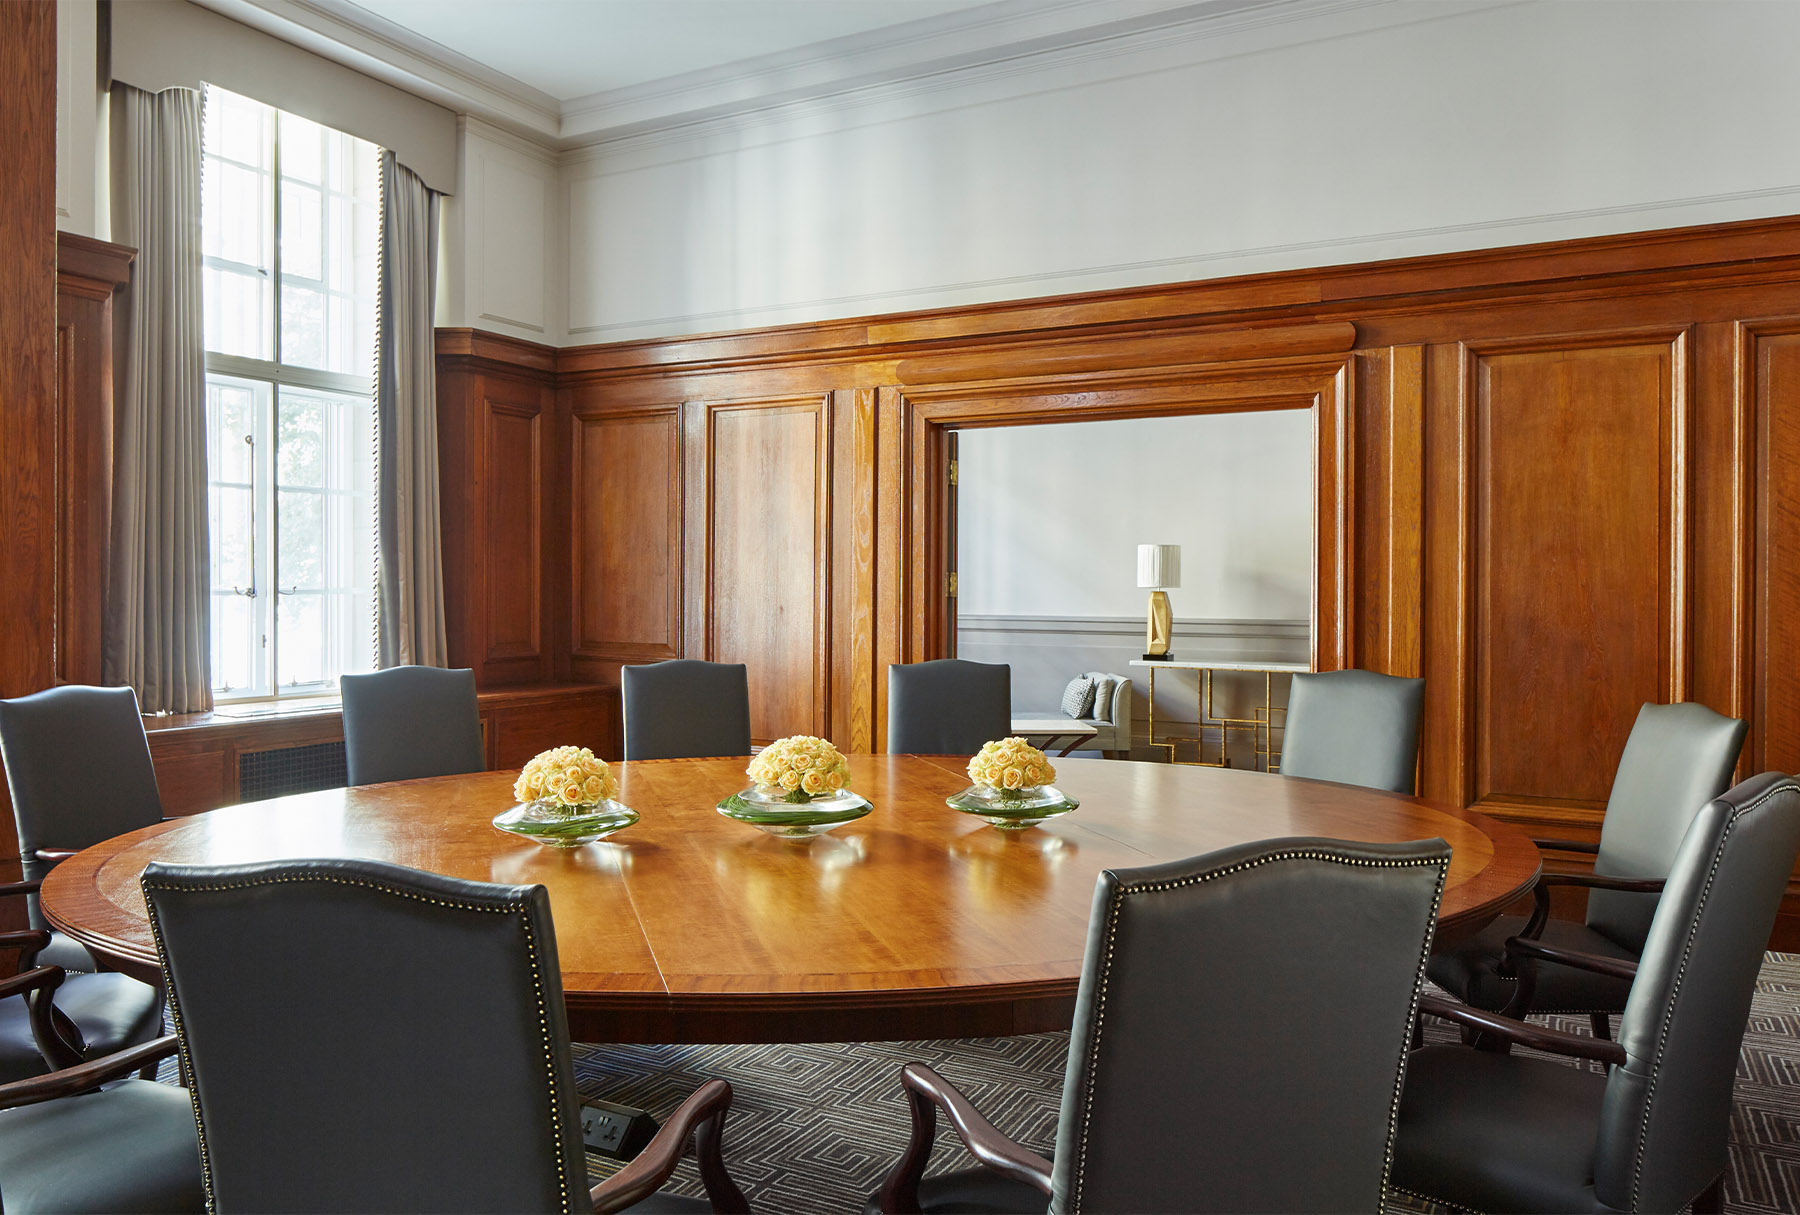 mh-lonch-boardroom3